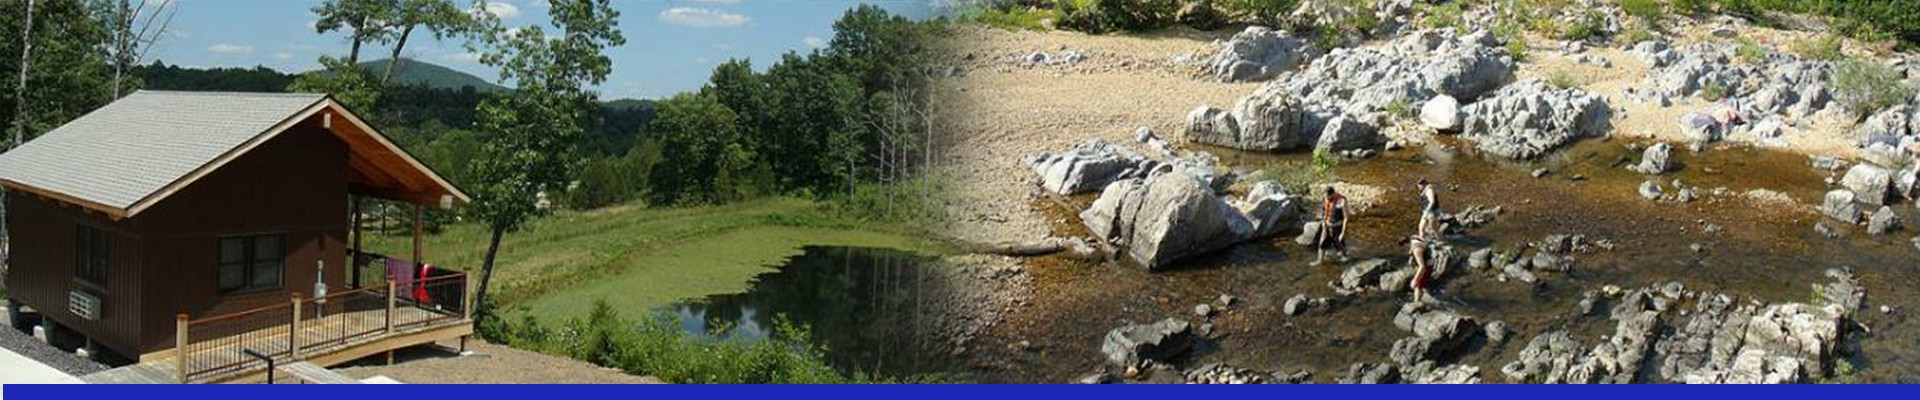 Enjoy your stay at Johnson Shut-ins State Park Campground.